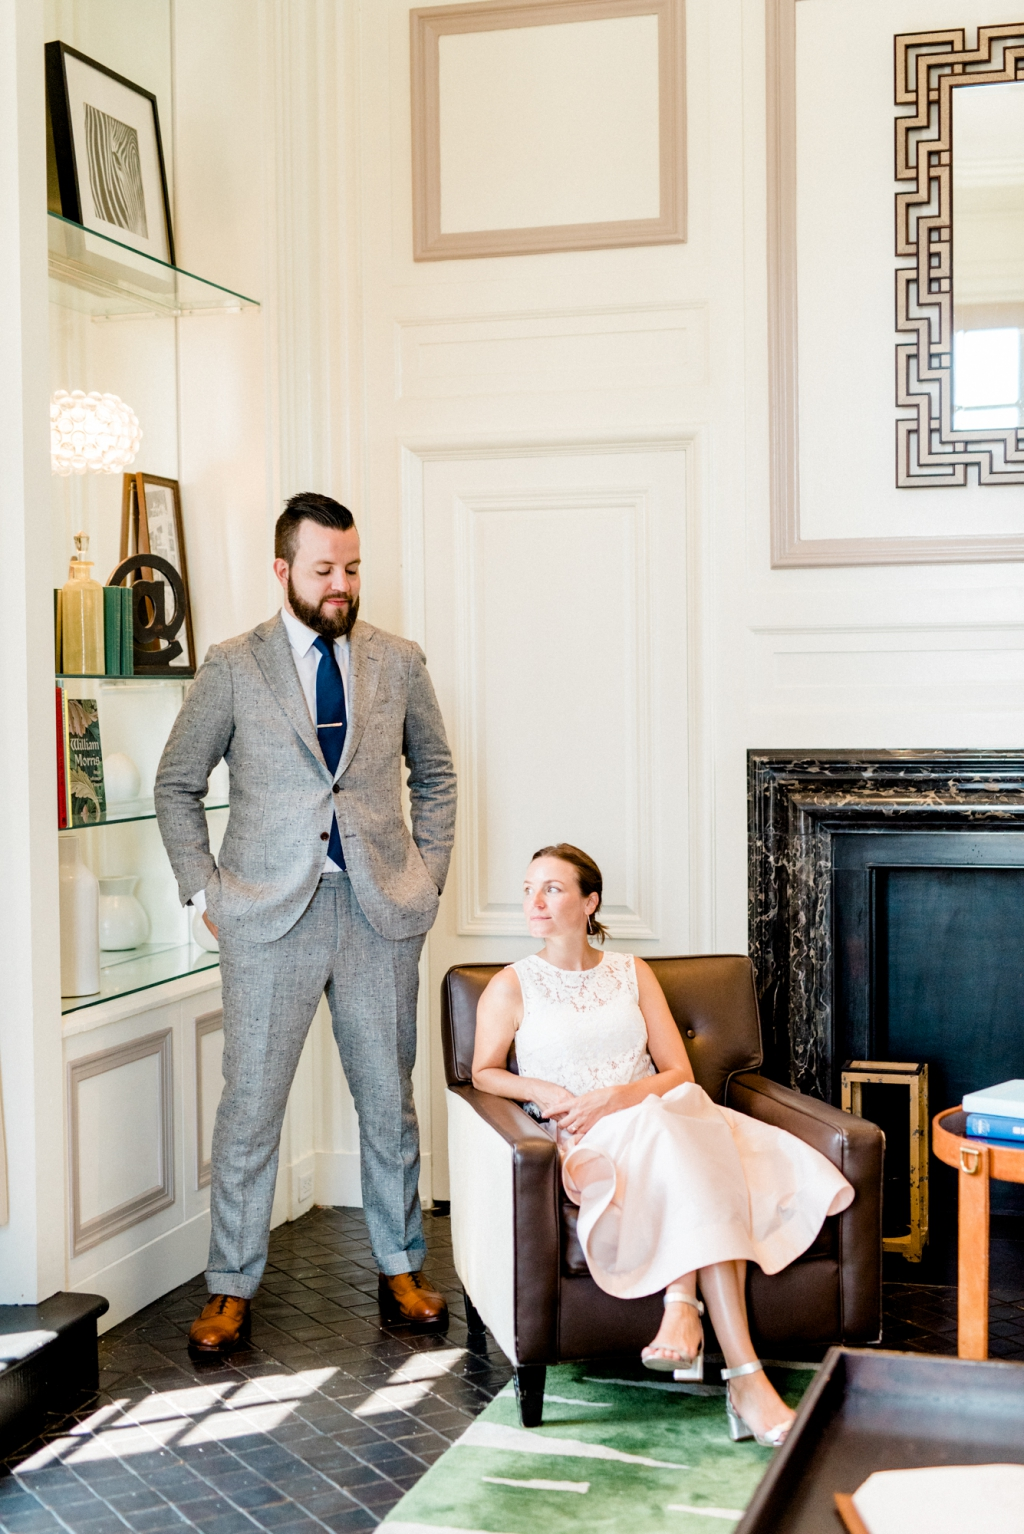 haley-richter-photography-intimate-summer-wedding-palomar-hotel-old-city-philadelphia-062